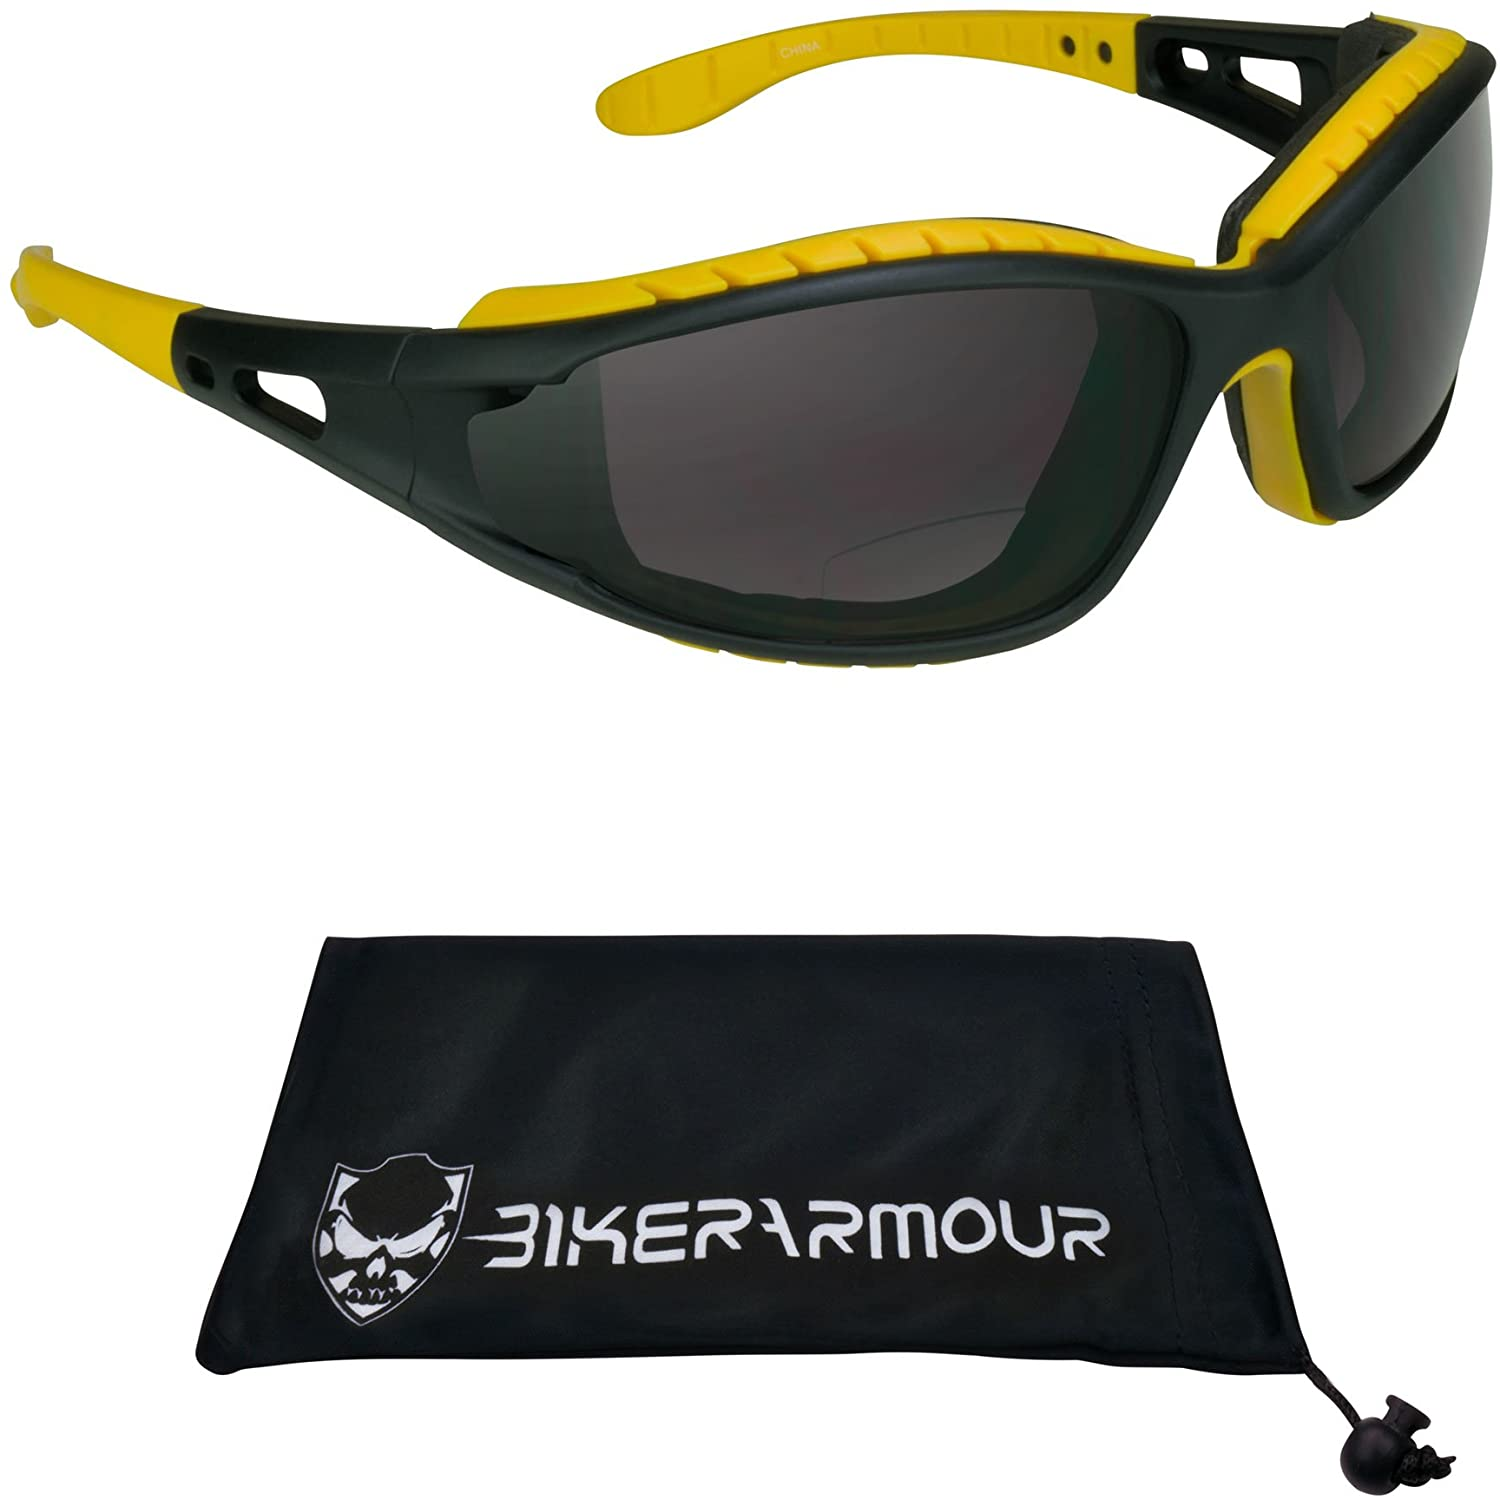 Motorcycle Bifocal Sunglasses with Removable Foam Padded